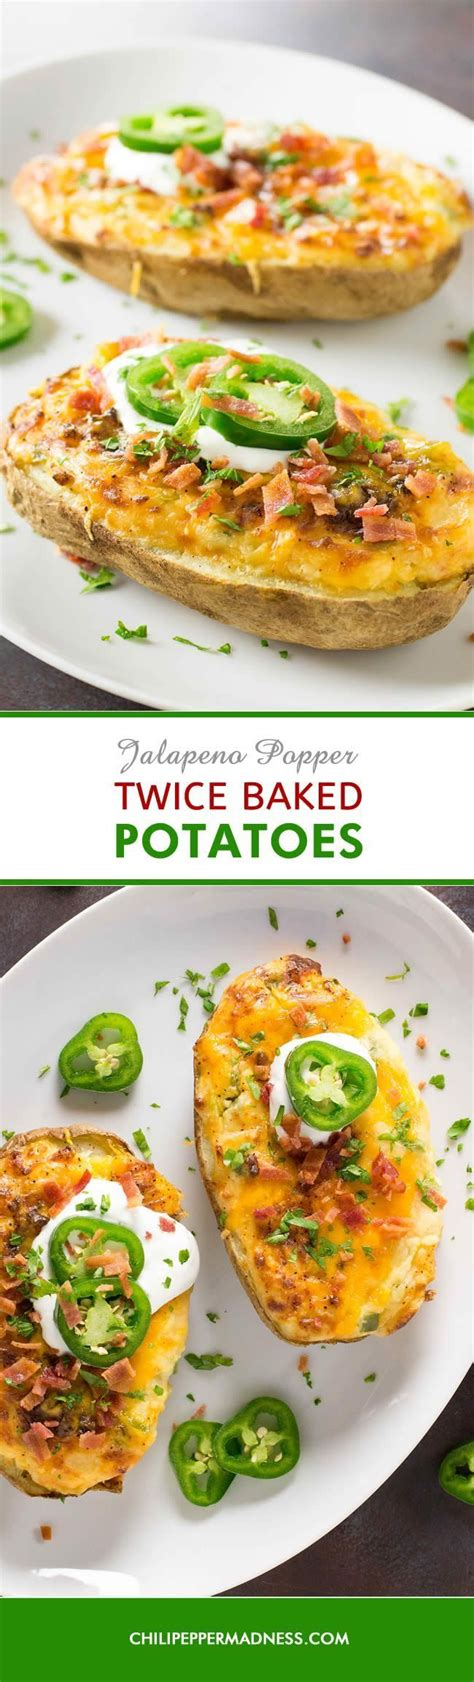 baked potato bar side dishes best 25 baked potato bar ideas on pinterest potato bar baked potato toppings and easy baked